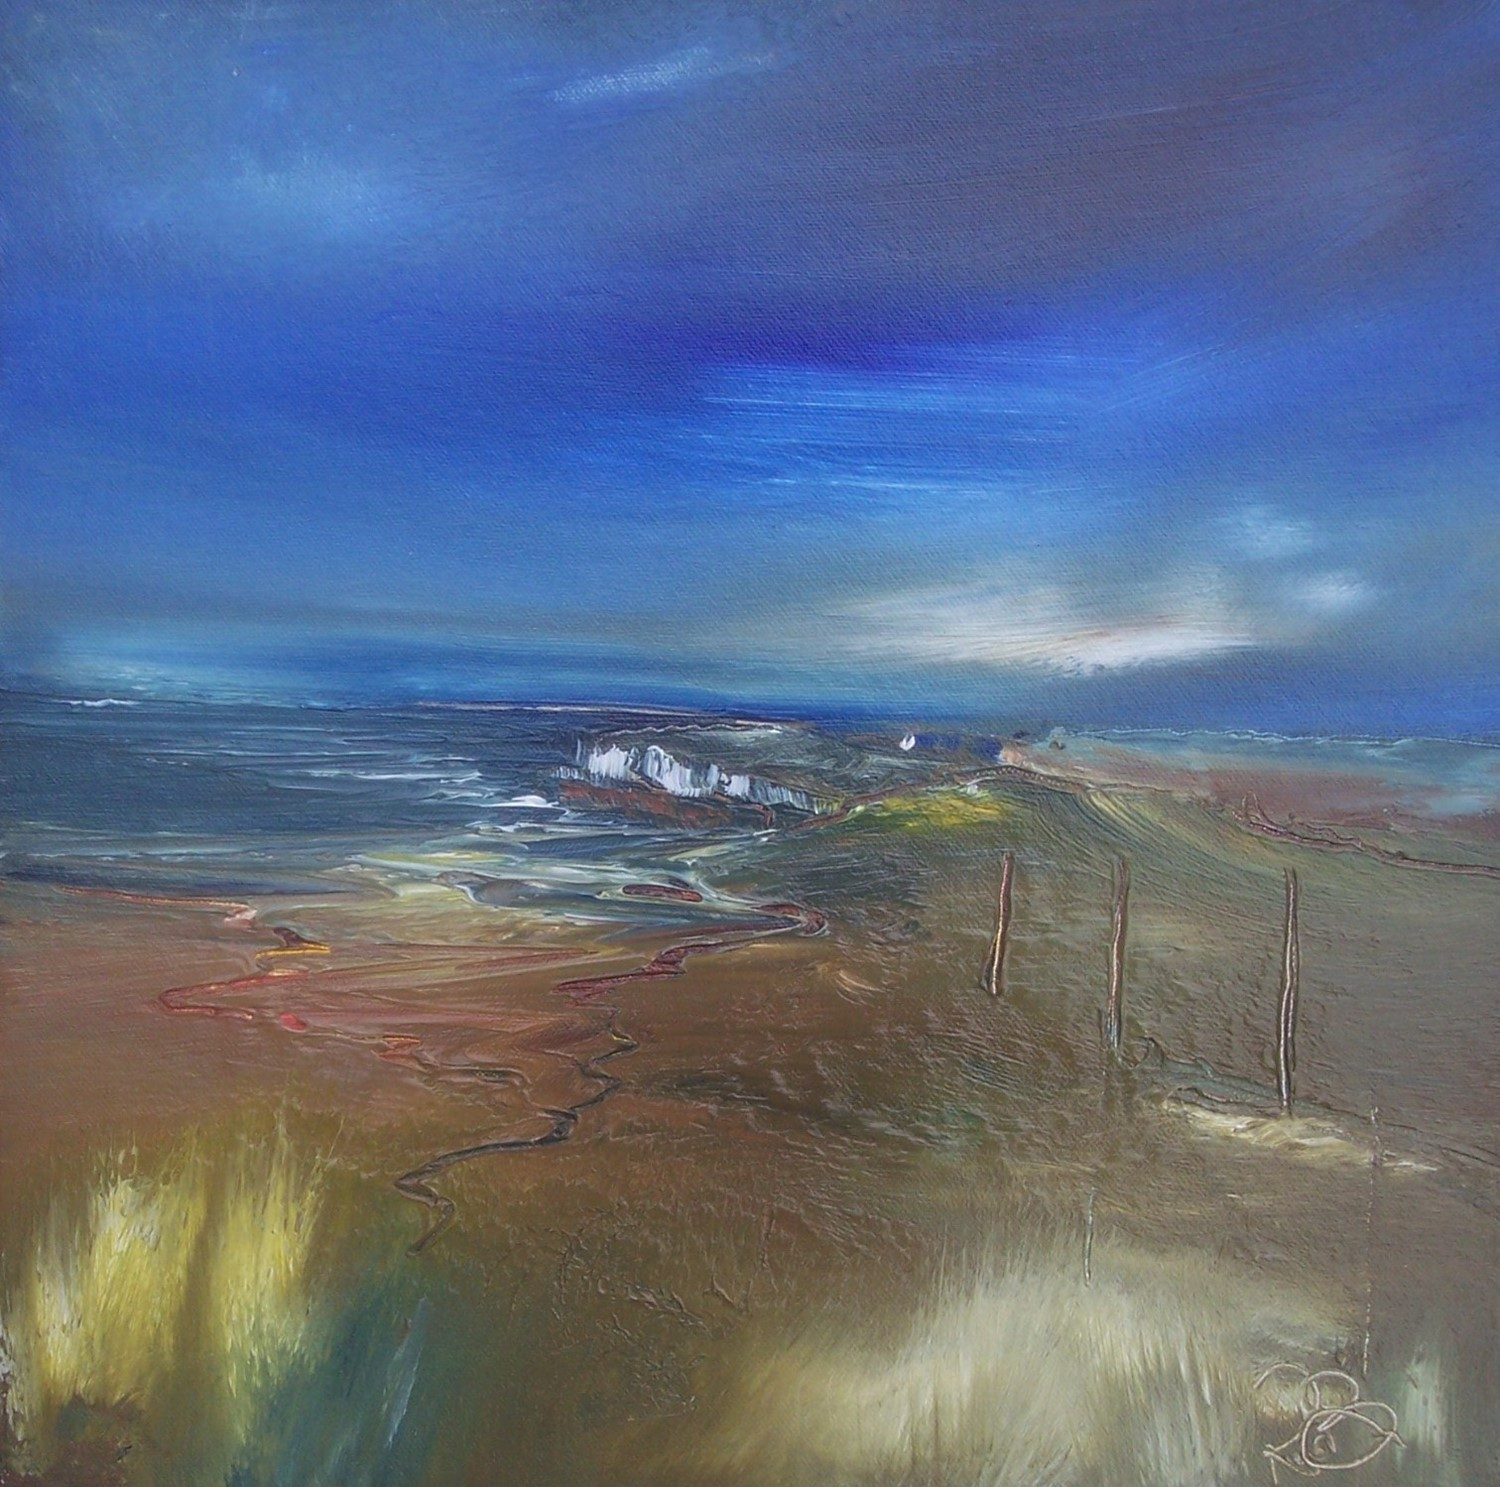 'Northern Headland' by artist Rosanne Barr